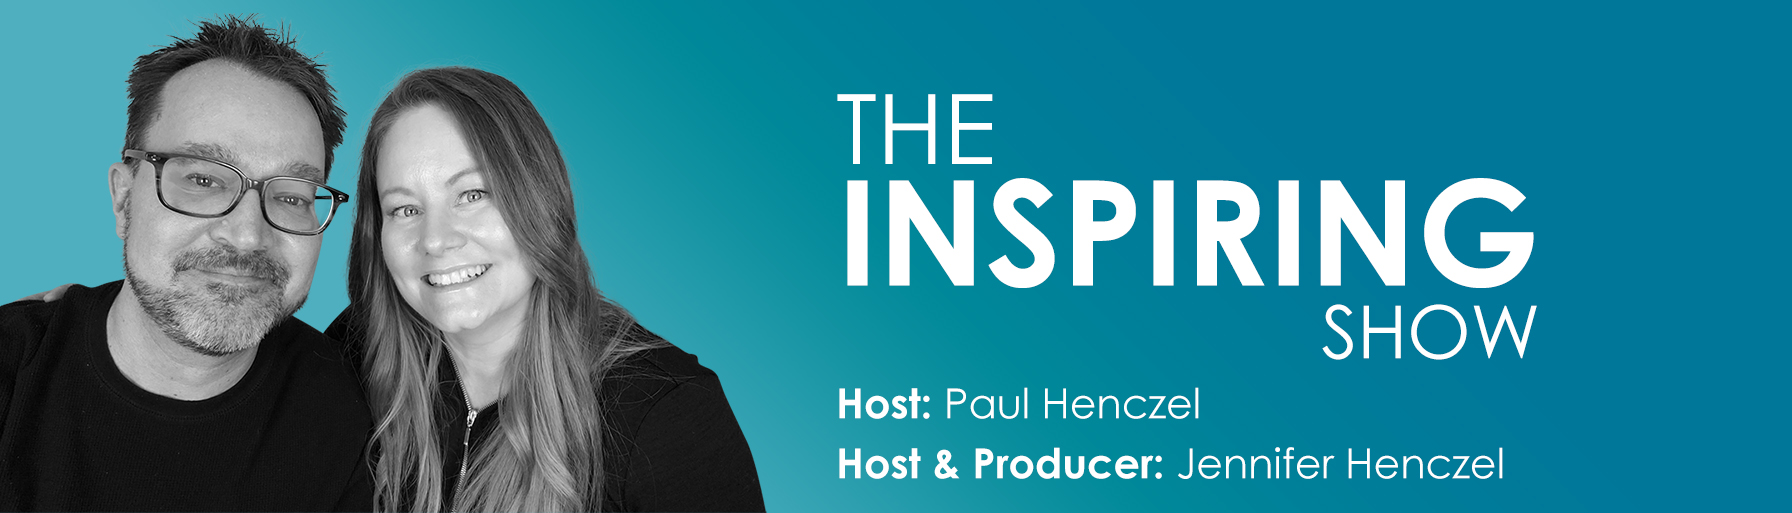 Paul and Jennifer Henczel Podcasters, Hosts of the Inspiring Show